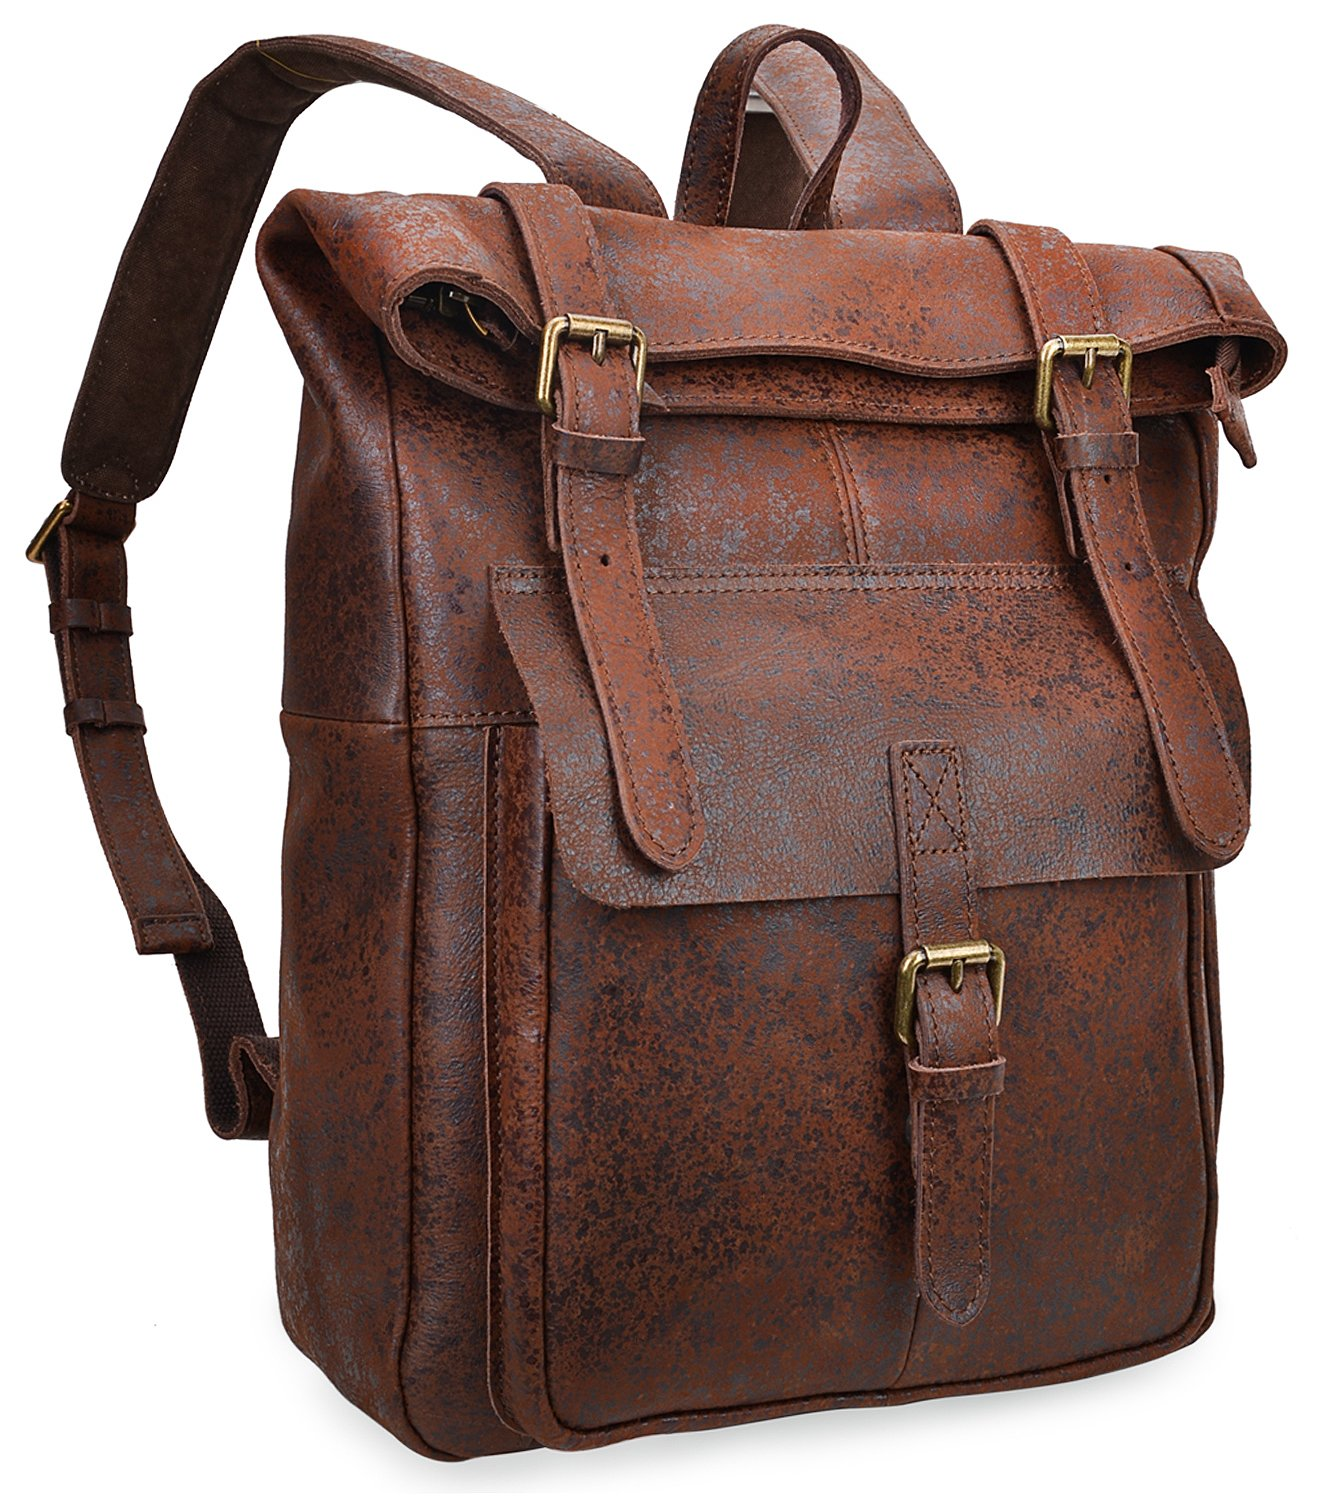 2a263c1ecd Amazon.com  ALTOSY Vintage Leather Backpack Travel Laptop Bags Casual  Daypack For Men Women 8186 (Dark Brown)  ALTOSY Co.